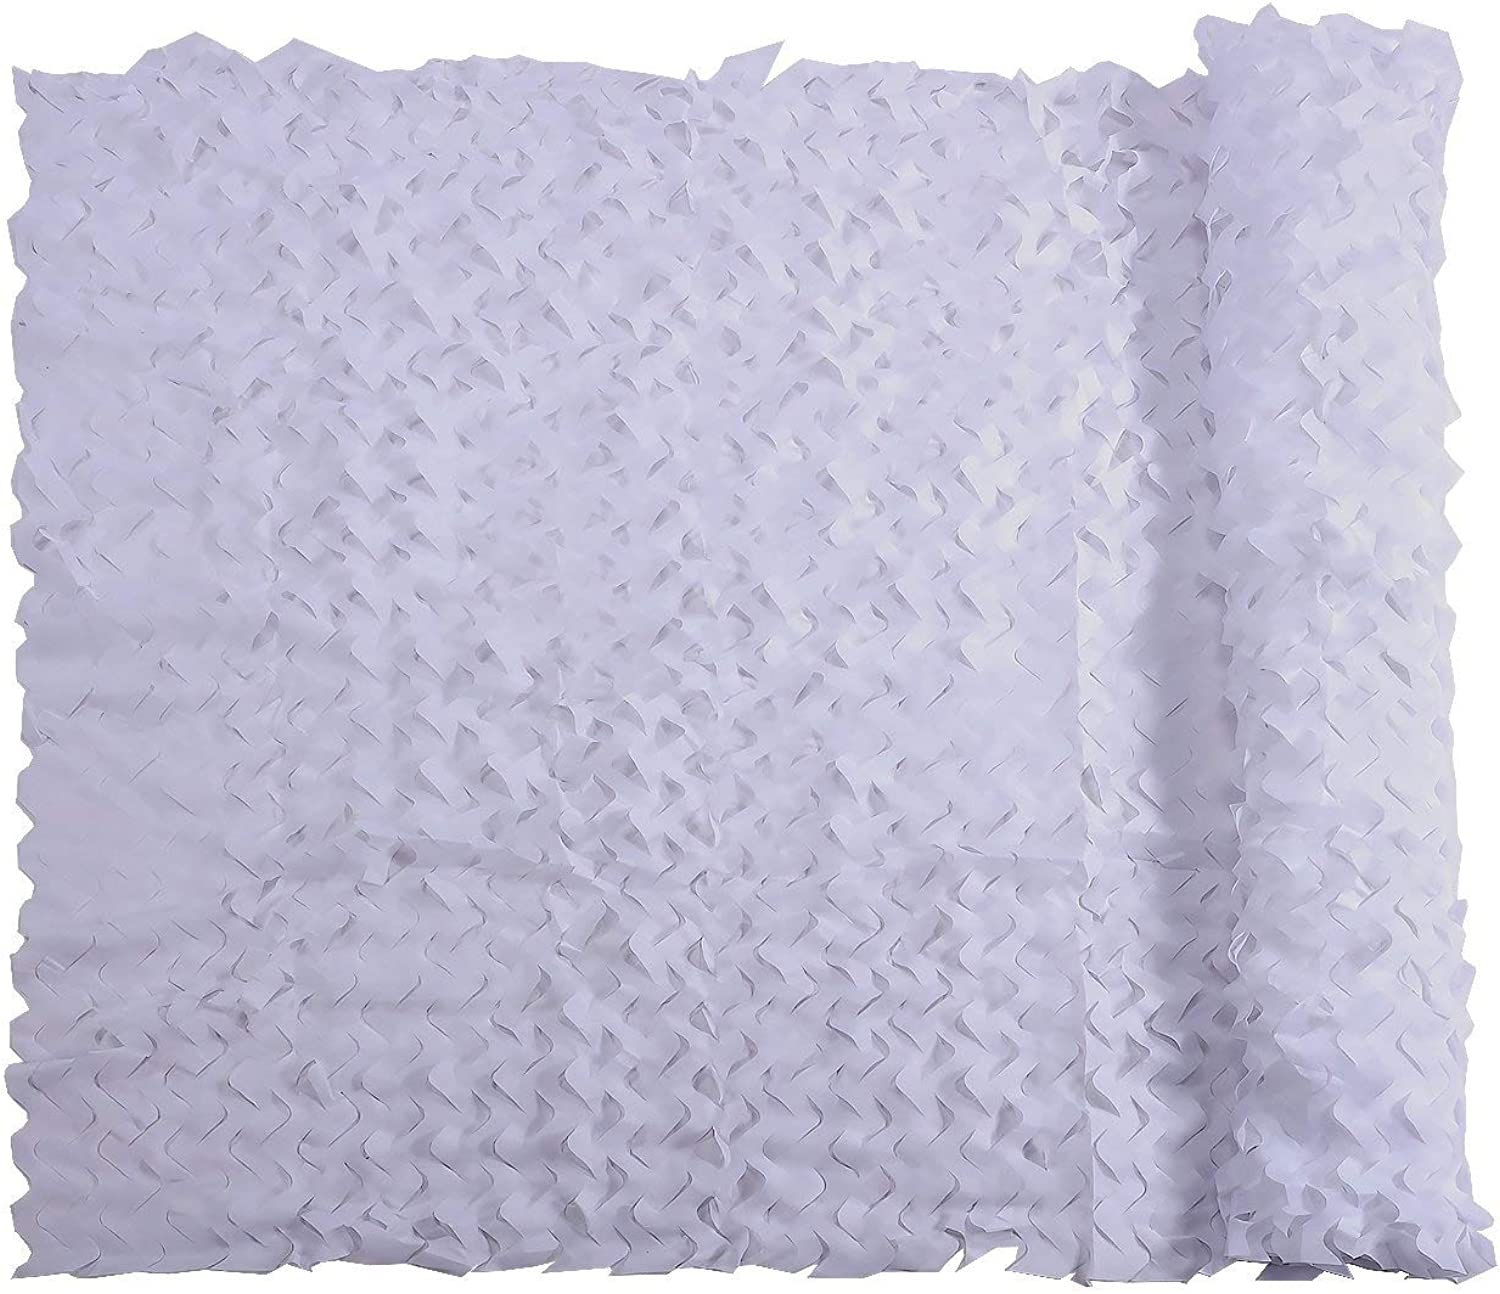 Camouflage Netting Military Nets Lightweight Durable Sunshade Decoration Hunting Blind Shooting Camo Net (color   White, Size   6X8M)